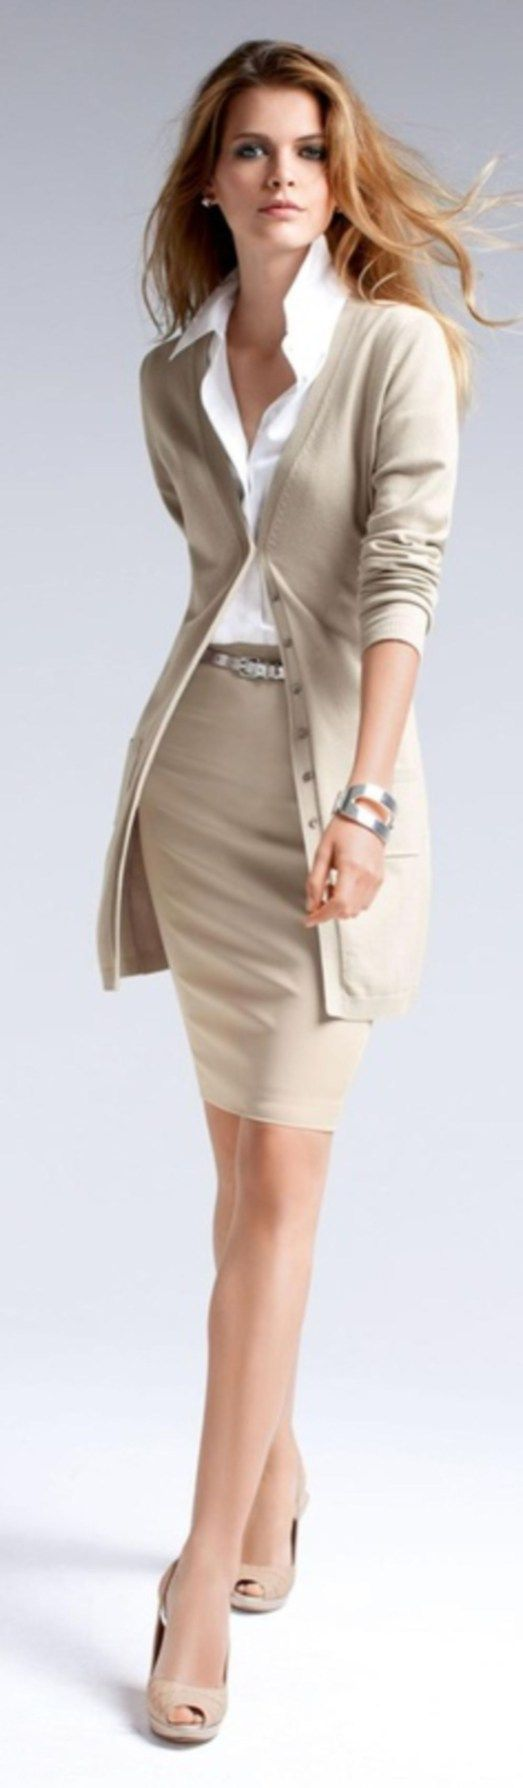 Fashionable work outfits for women 2017 013